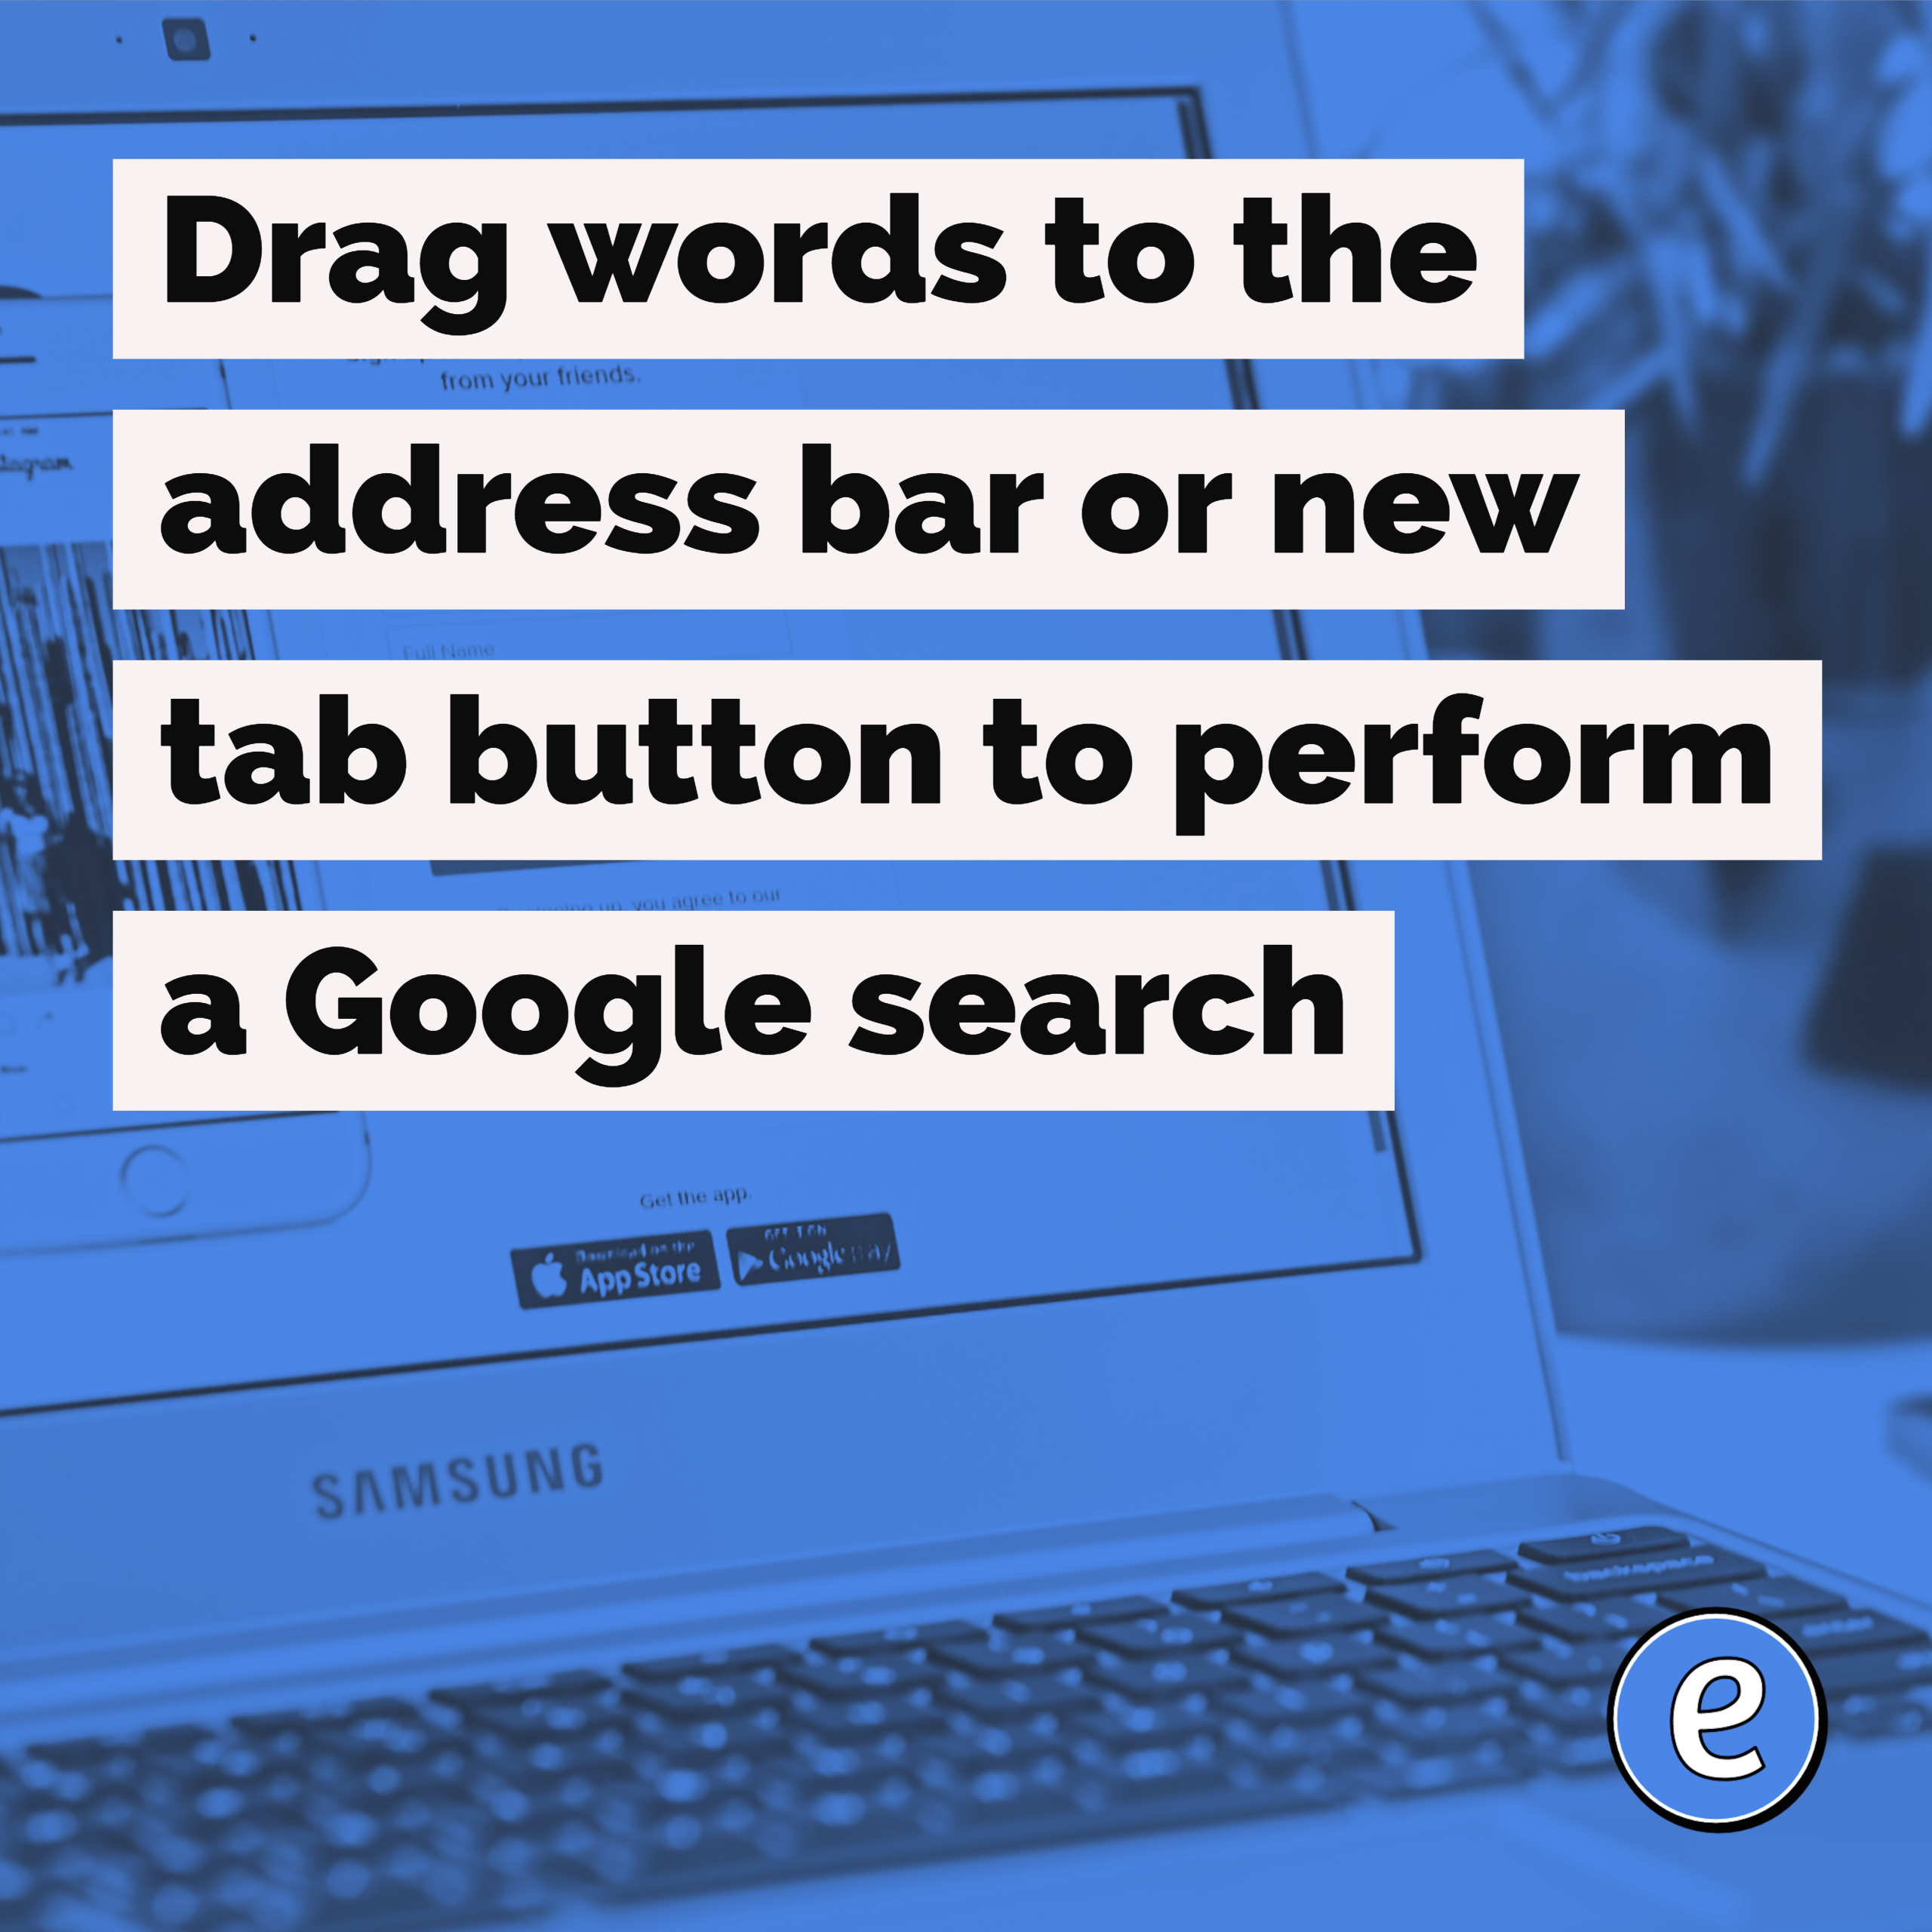 Drag words to the address bar or new tab button to perform a Google search